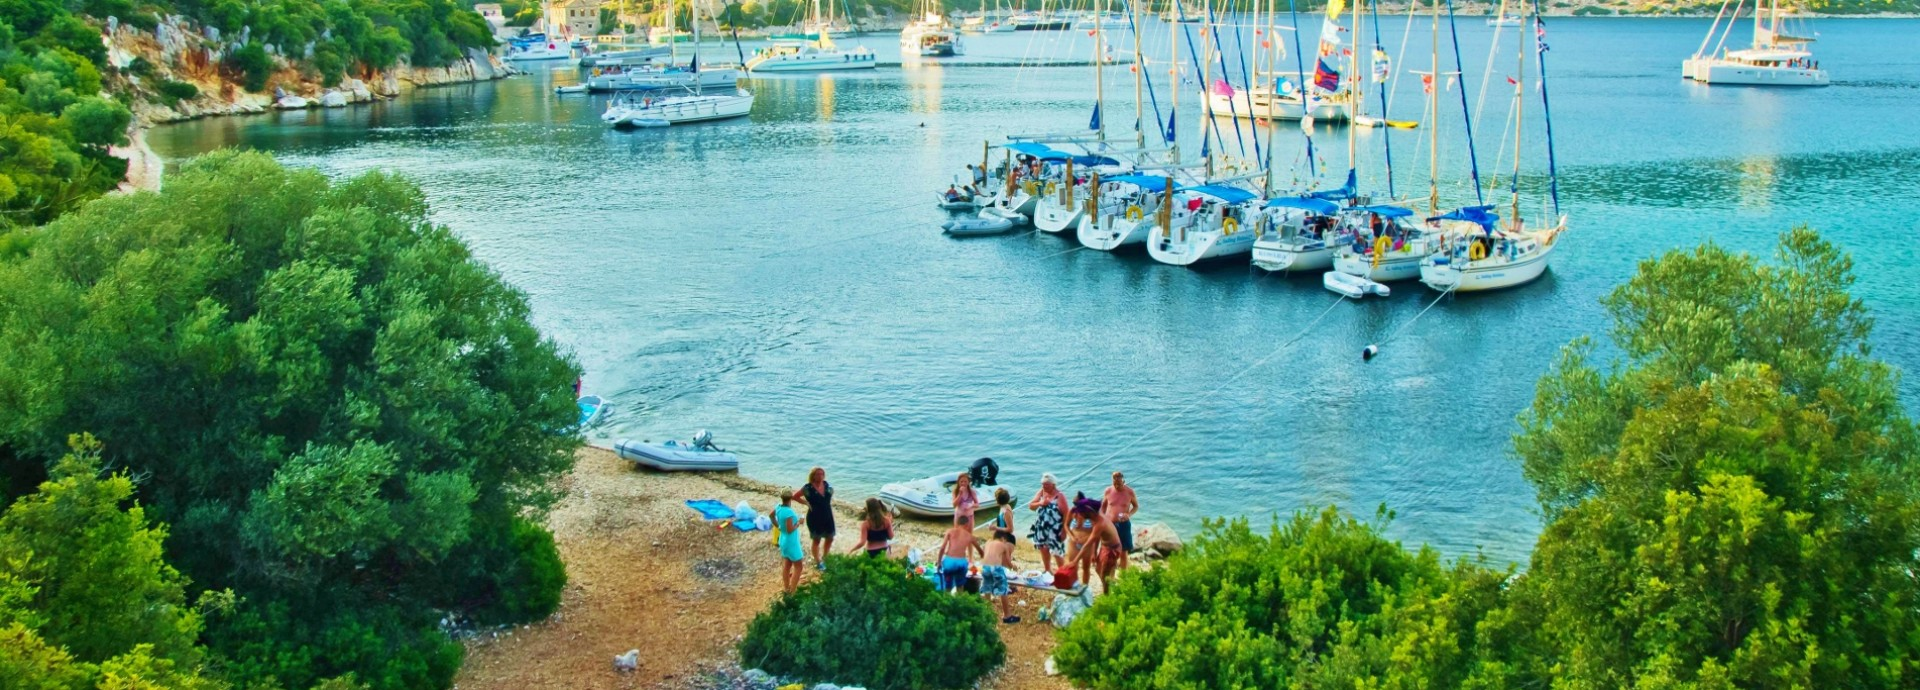 John Green's beach party in Port Leone, Kalamos Island, South Ionian